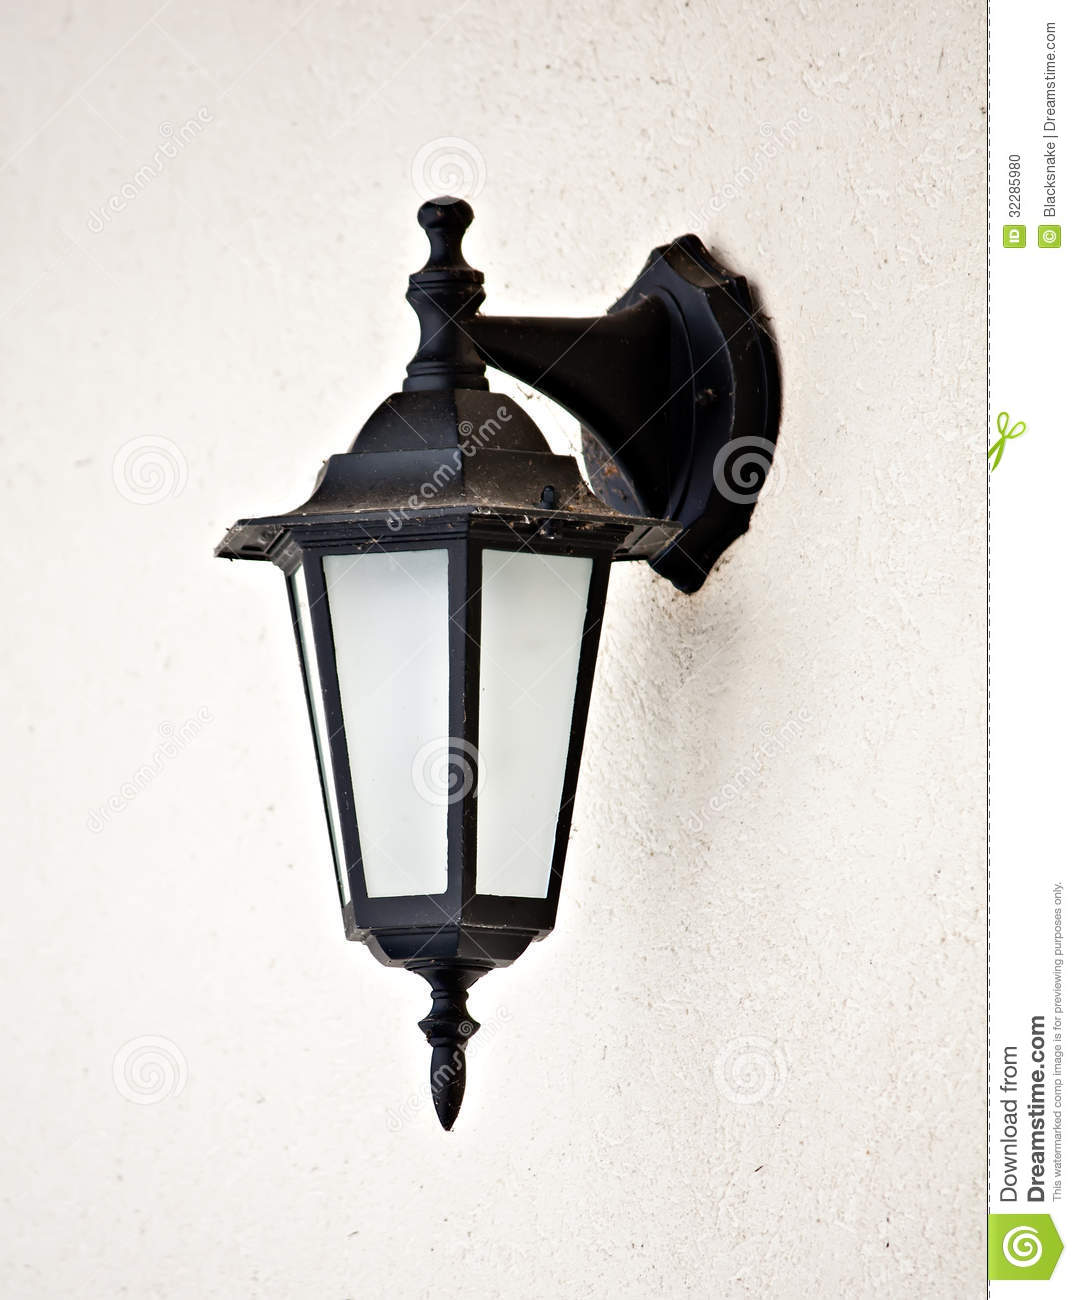 Outdoor lamp clipart 20 free Cliparts  Download images on Clipground 2019